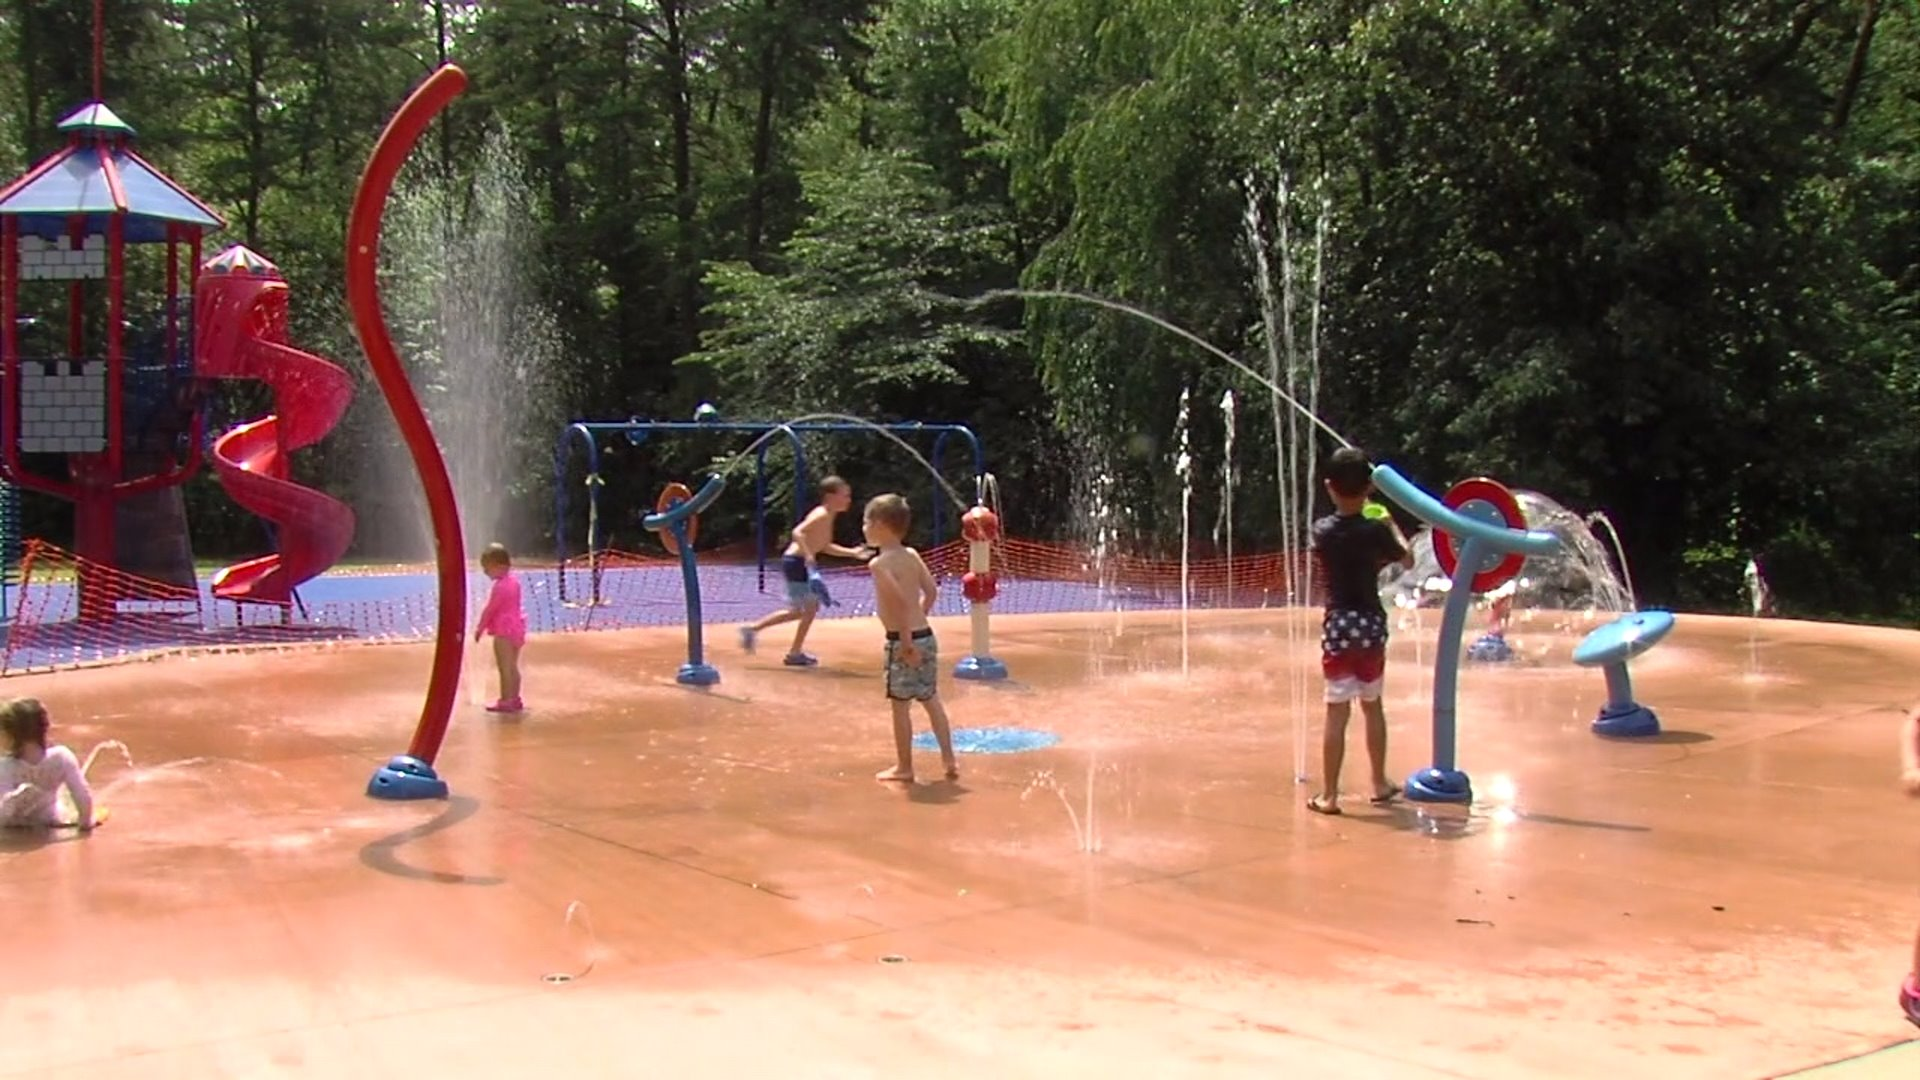 Pools and splash pads open for the season in Winston-Salem